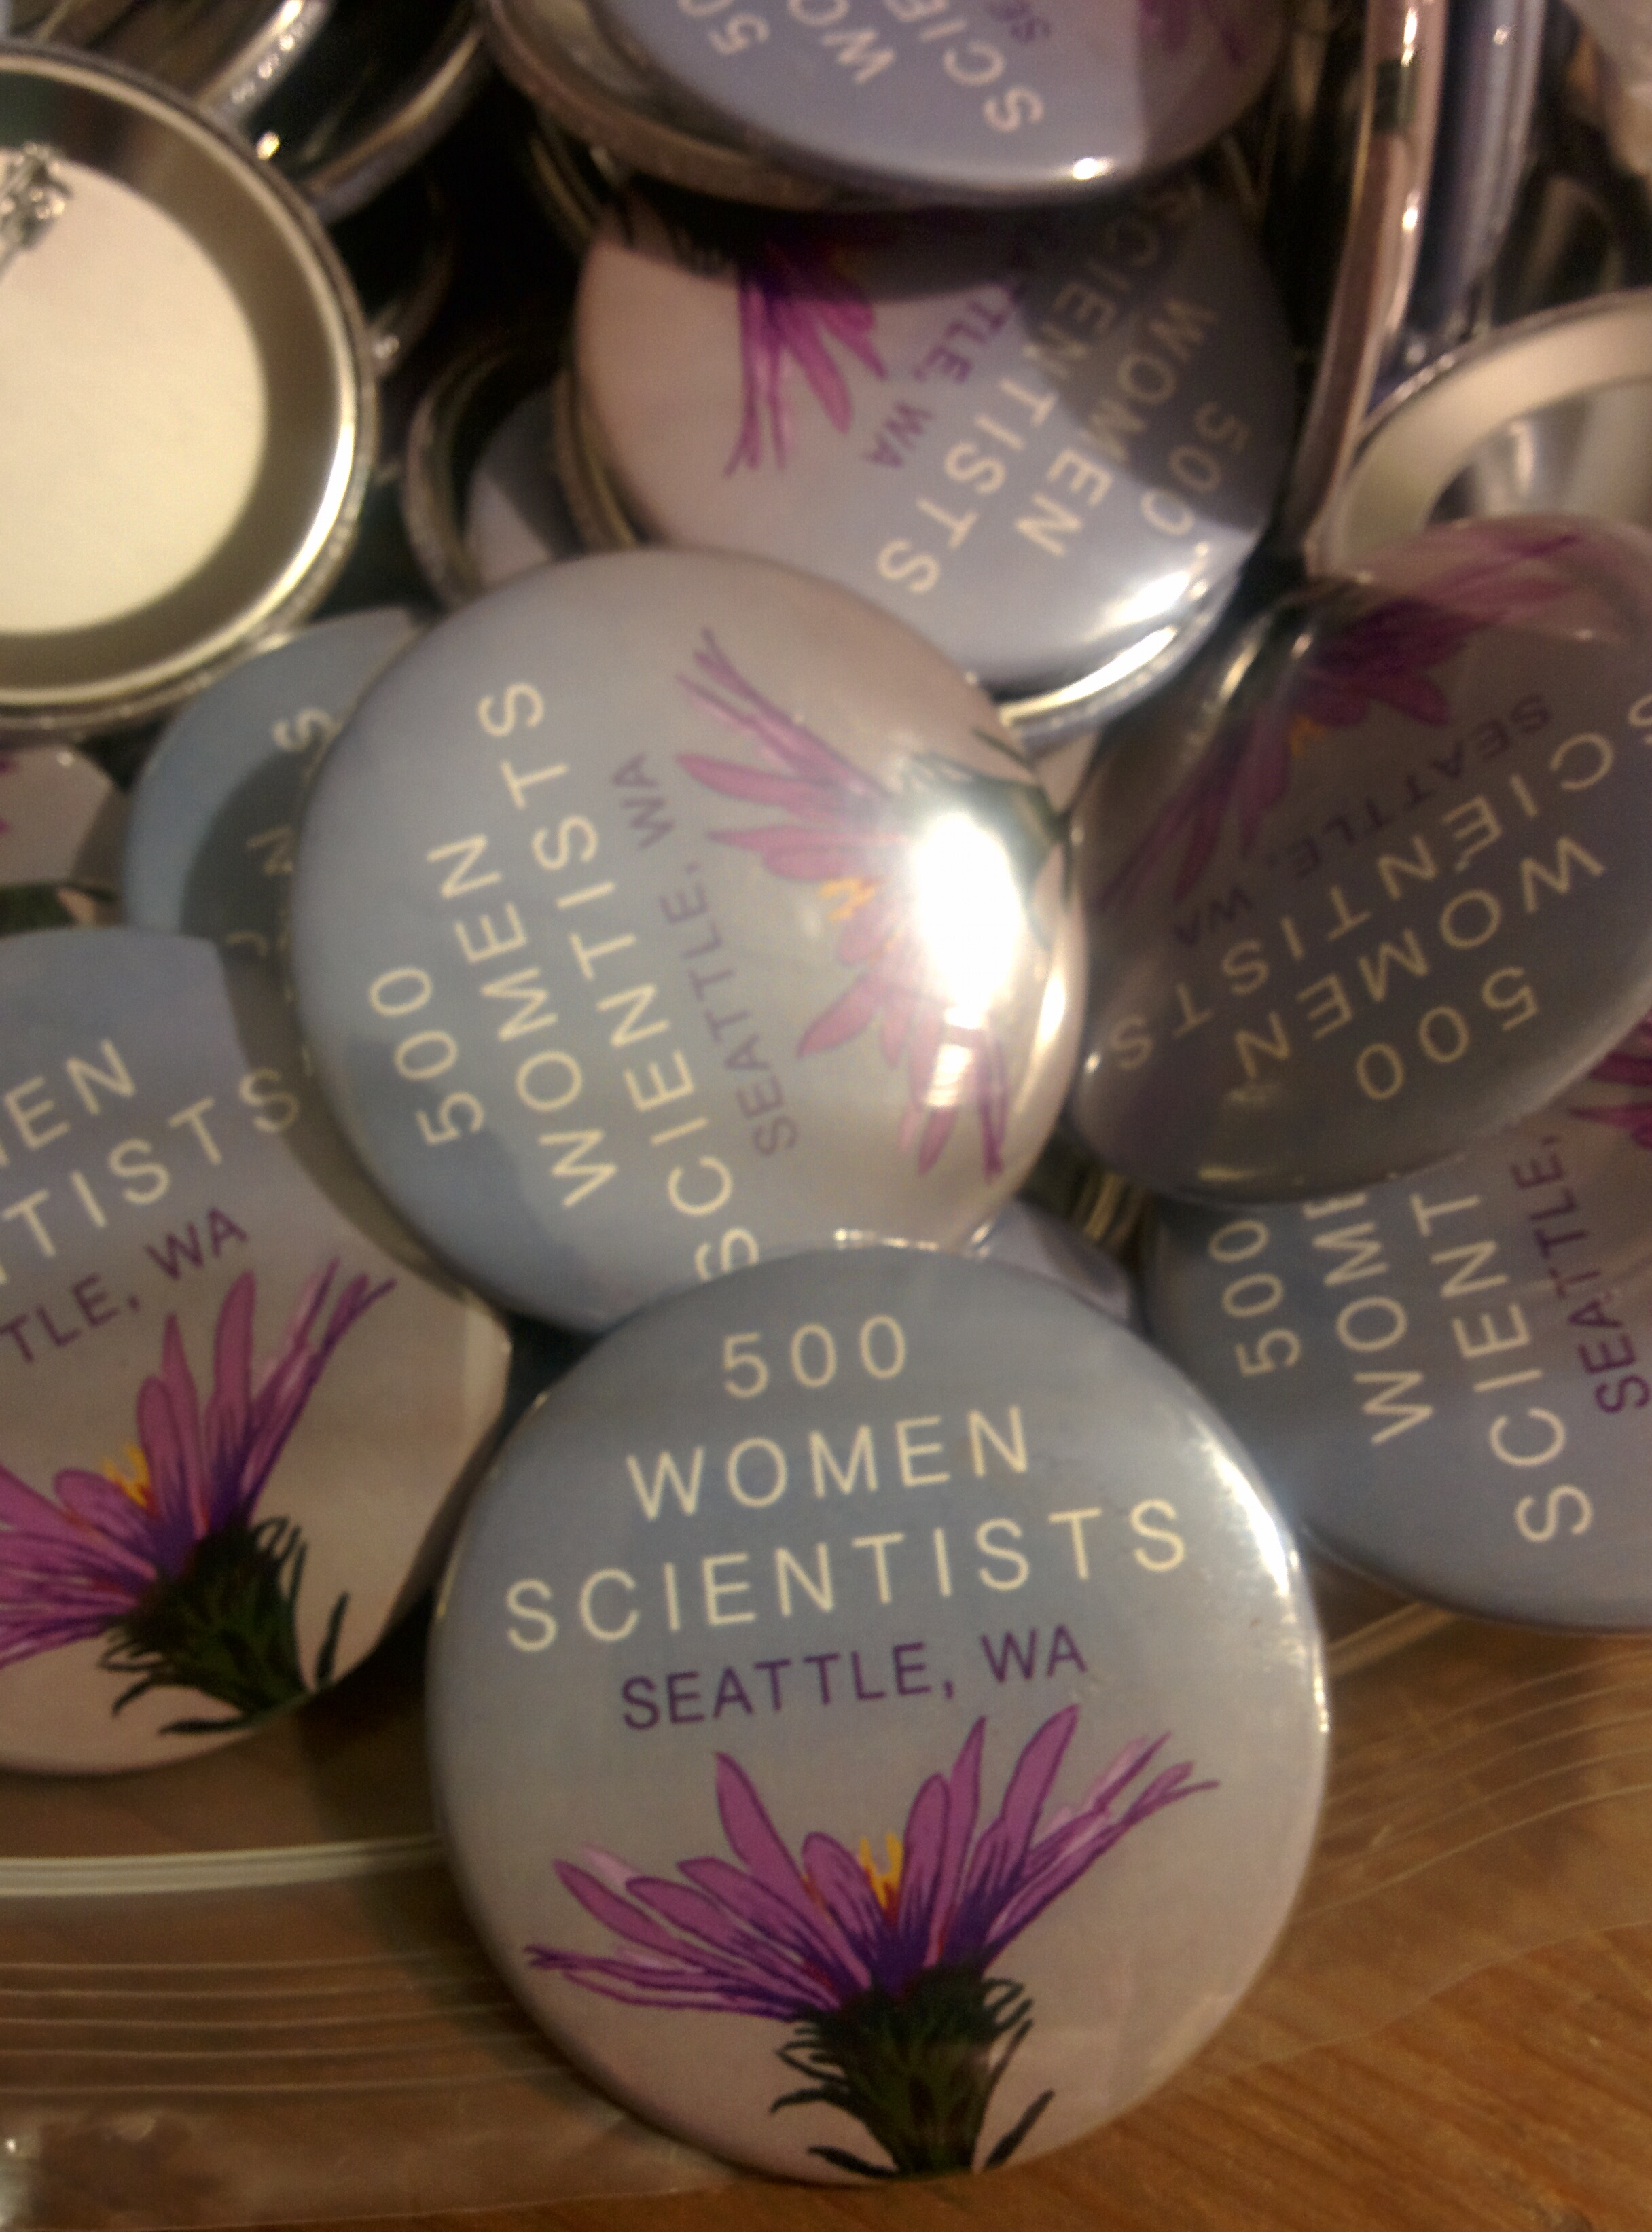 Be sure to get your button at the March!